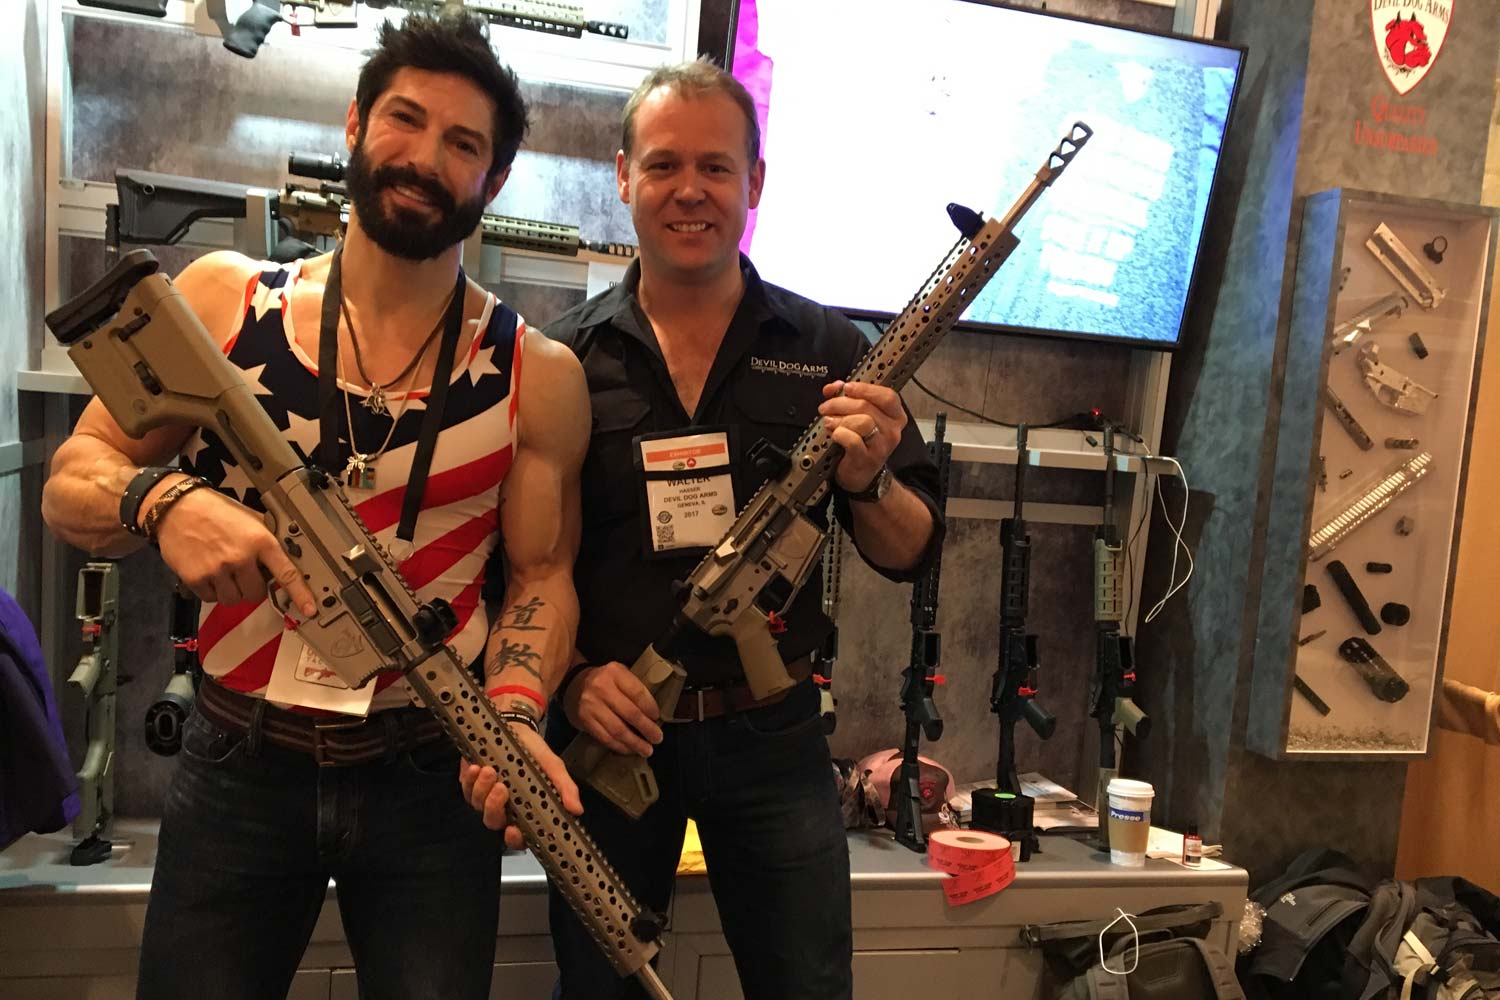 Rudy Reyes left and Walt Hasser right show off Devil Dog arms rifles. (Photo: Military.com/Hope Seck)